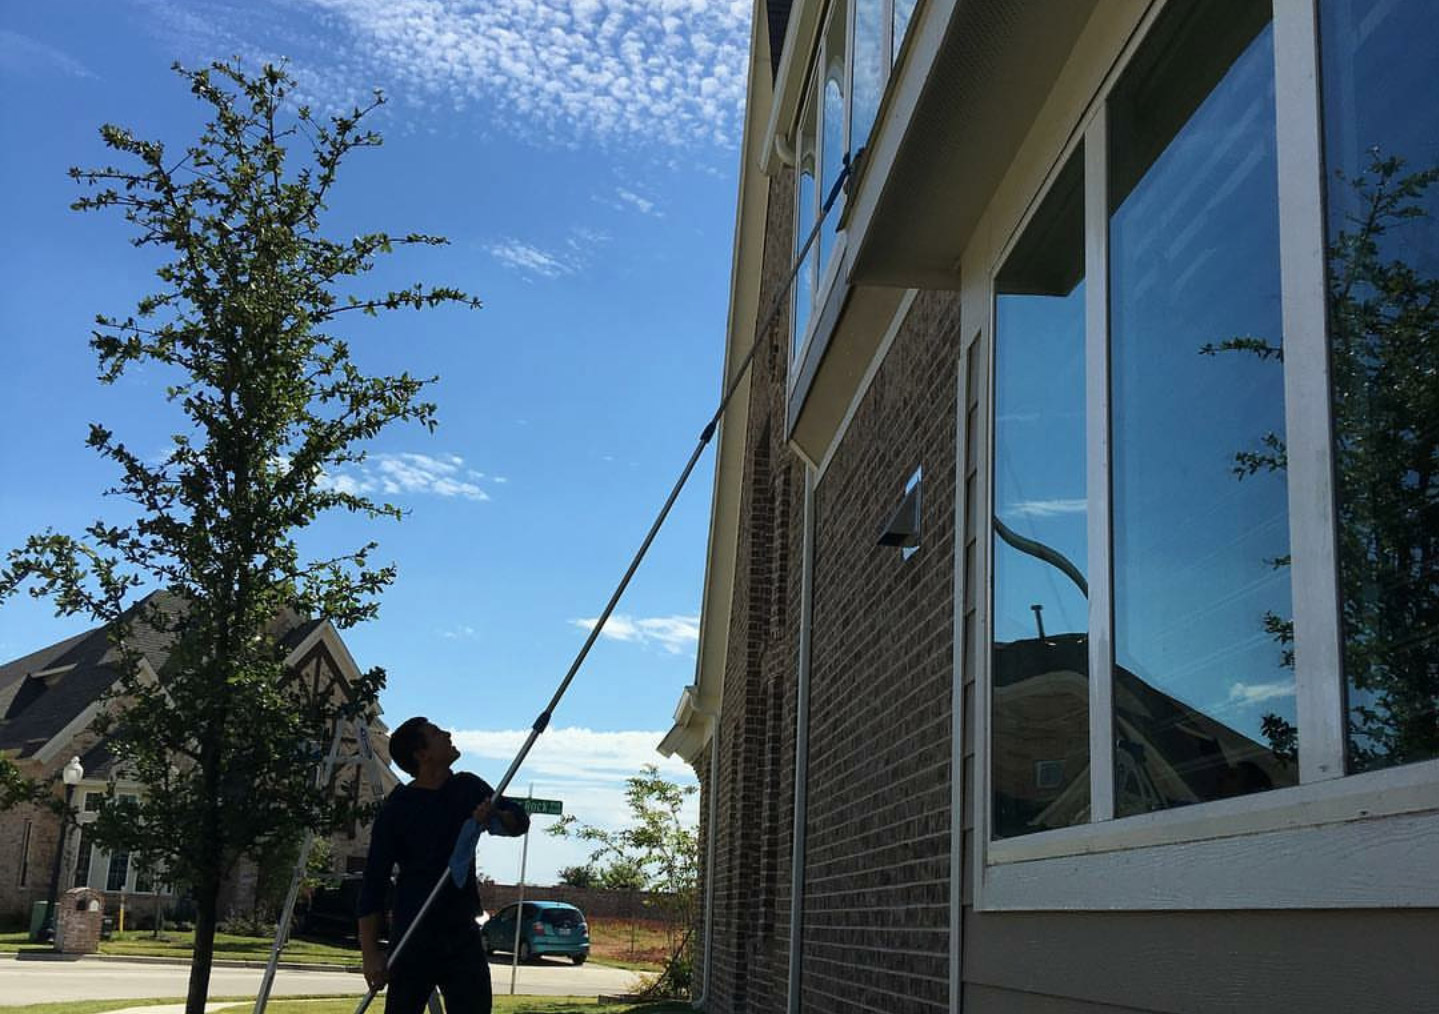 Window Cleaning - Many homeowners overlook their window's cleanliness. We highly recommend having them cleaned 2 to 3 times a year. It gives your home a refreshed look and could save you thousands in the long term by avoiding stained neglected windows that need to be replaced.